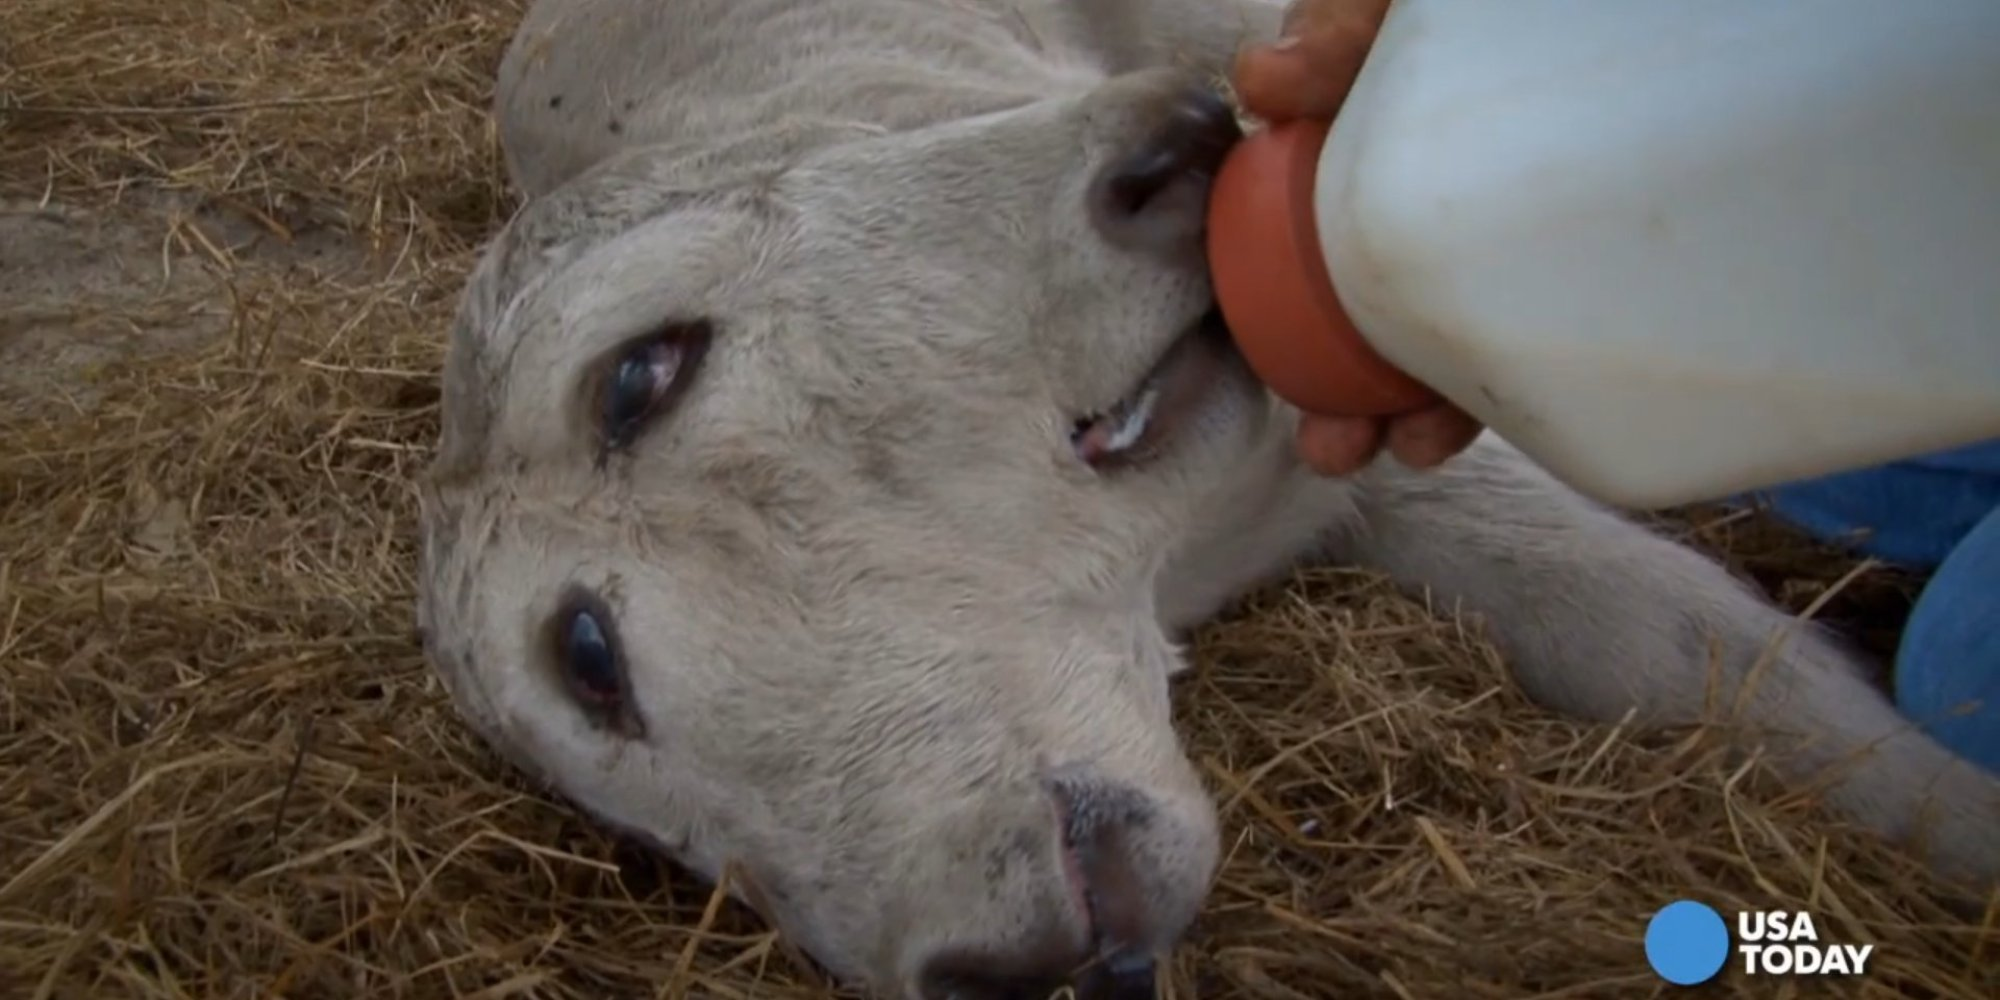 Cow Born With Two Faces | HuffPost - photo#20